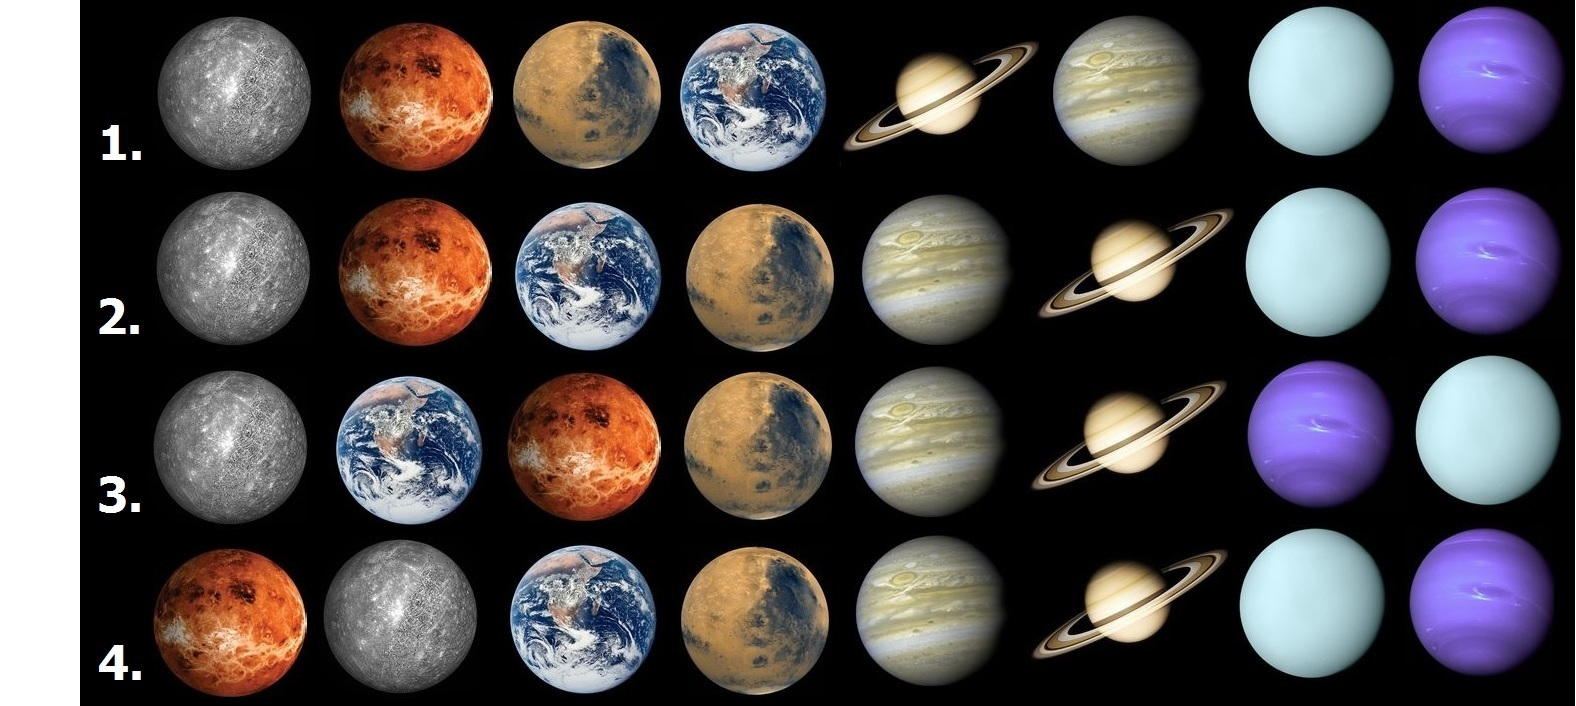 Planet facts and stats from EightPlanetsorg